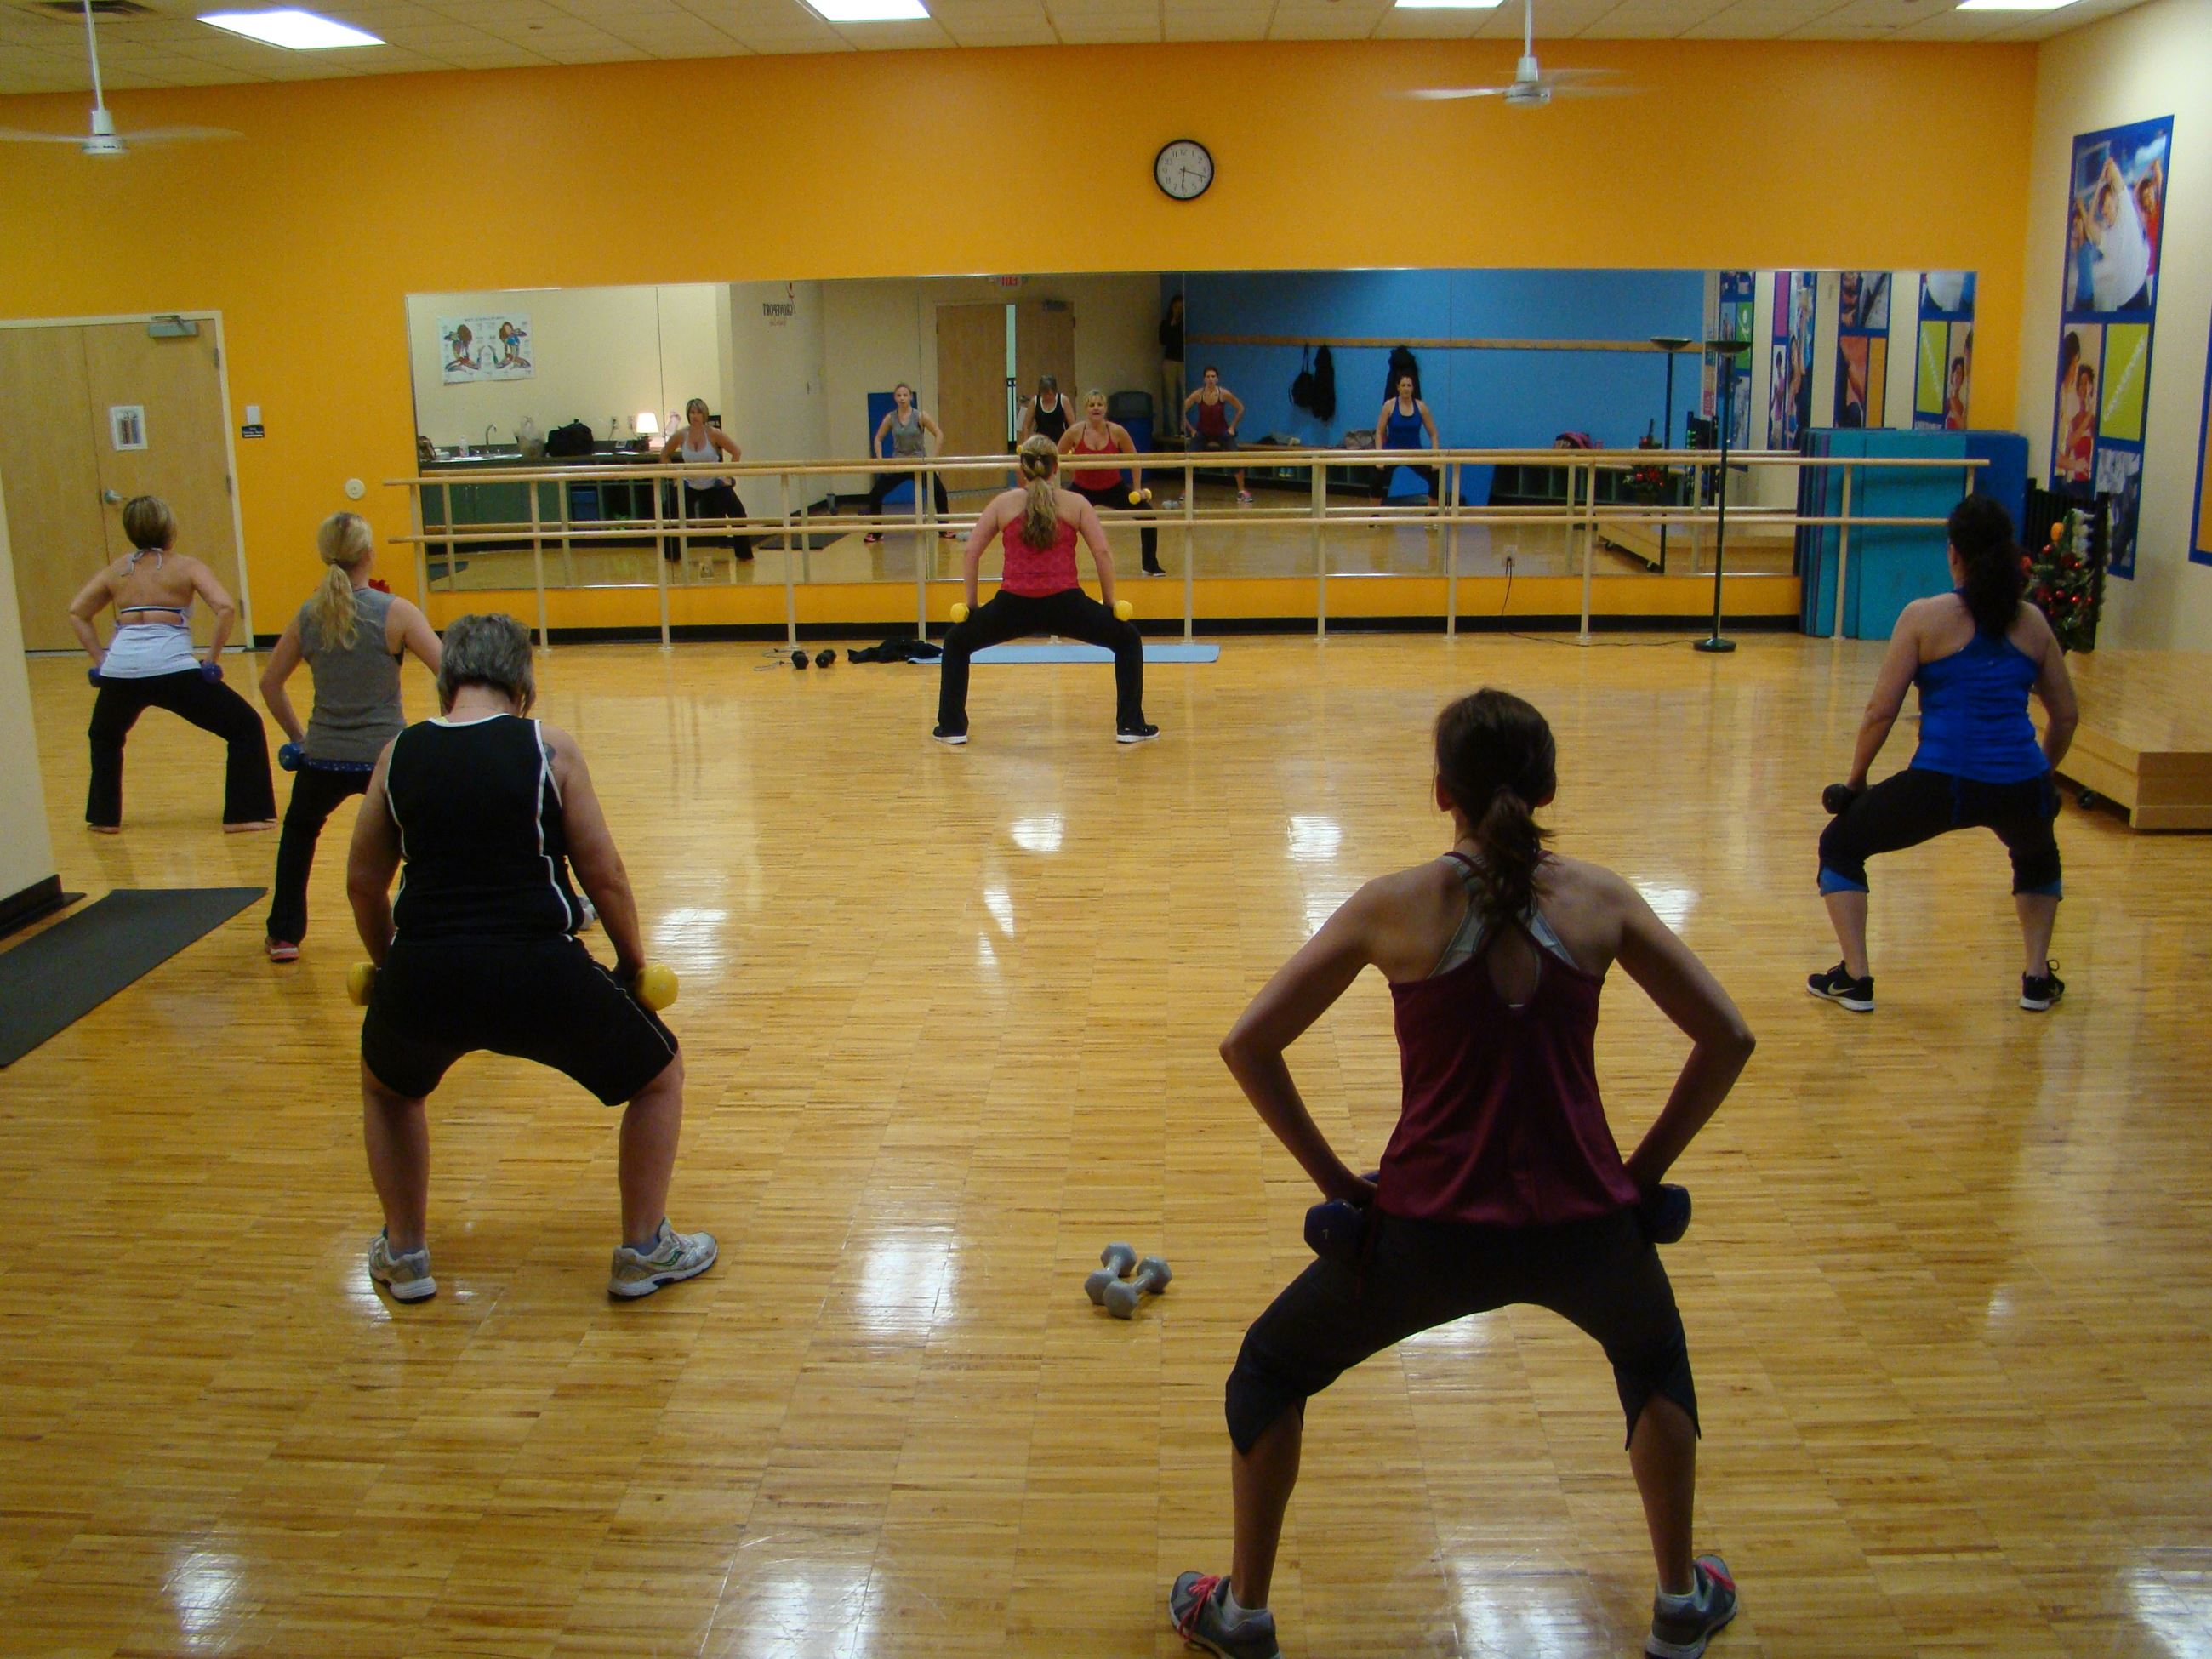 People exercising together in the Recreation Center's Group Fitness Studio.